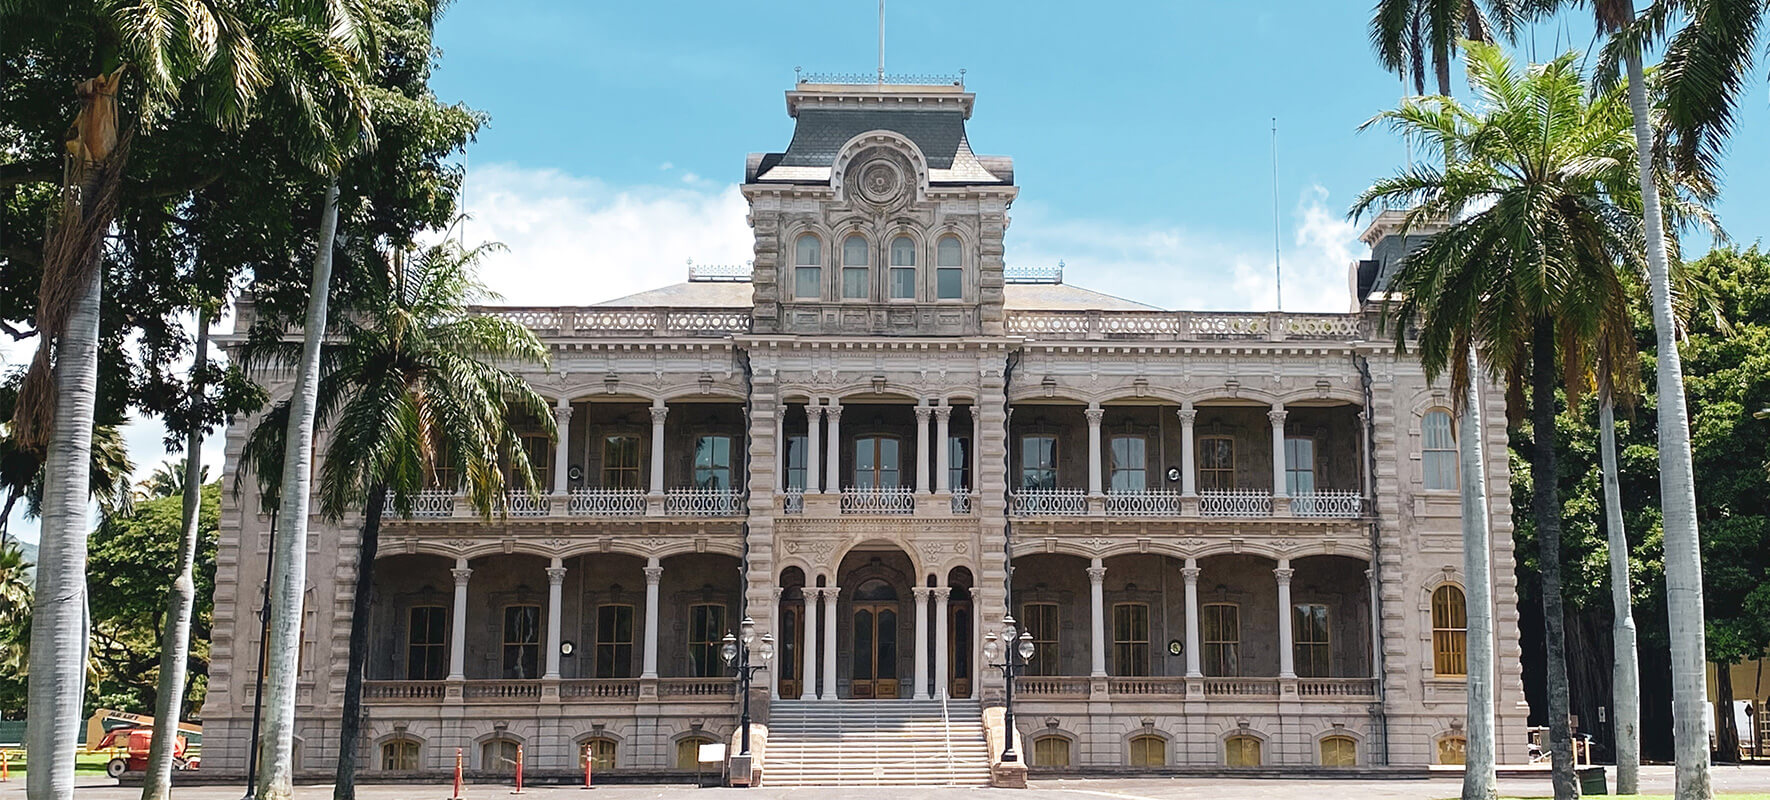 Iolani Palace was and continues to be the only official royal residence in the United States